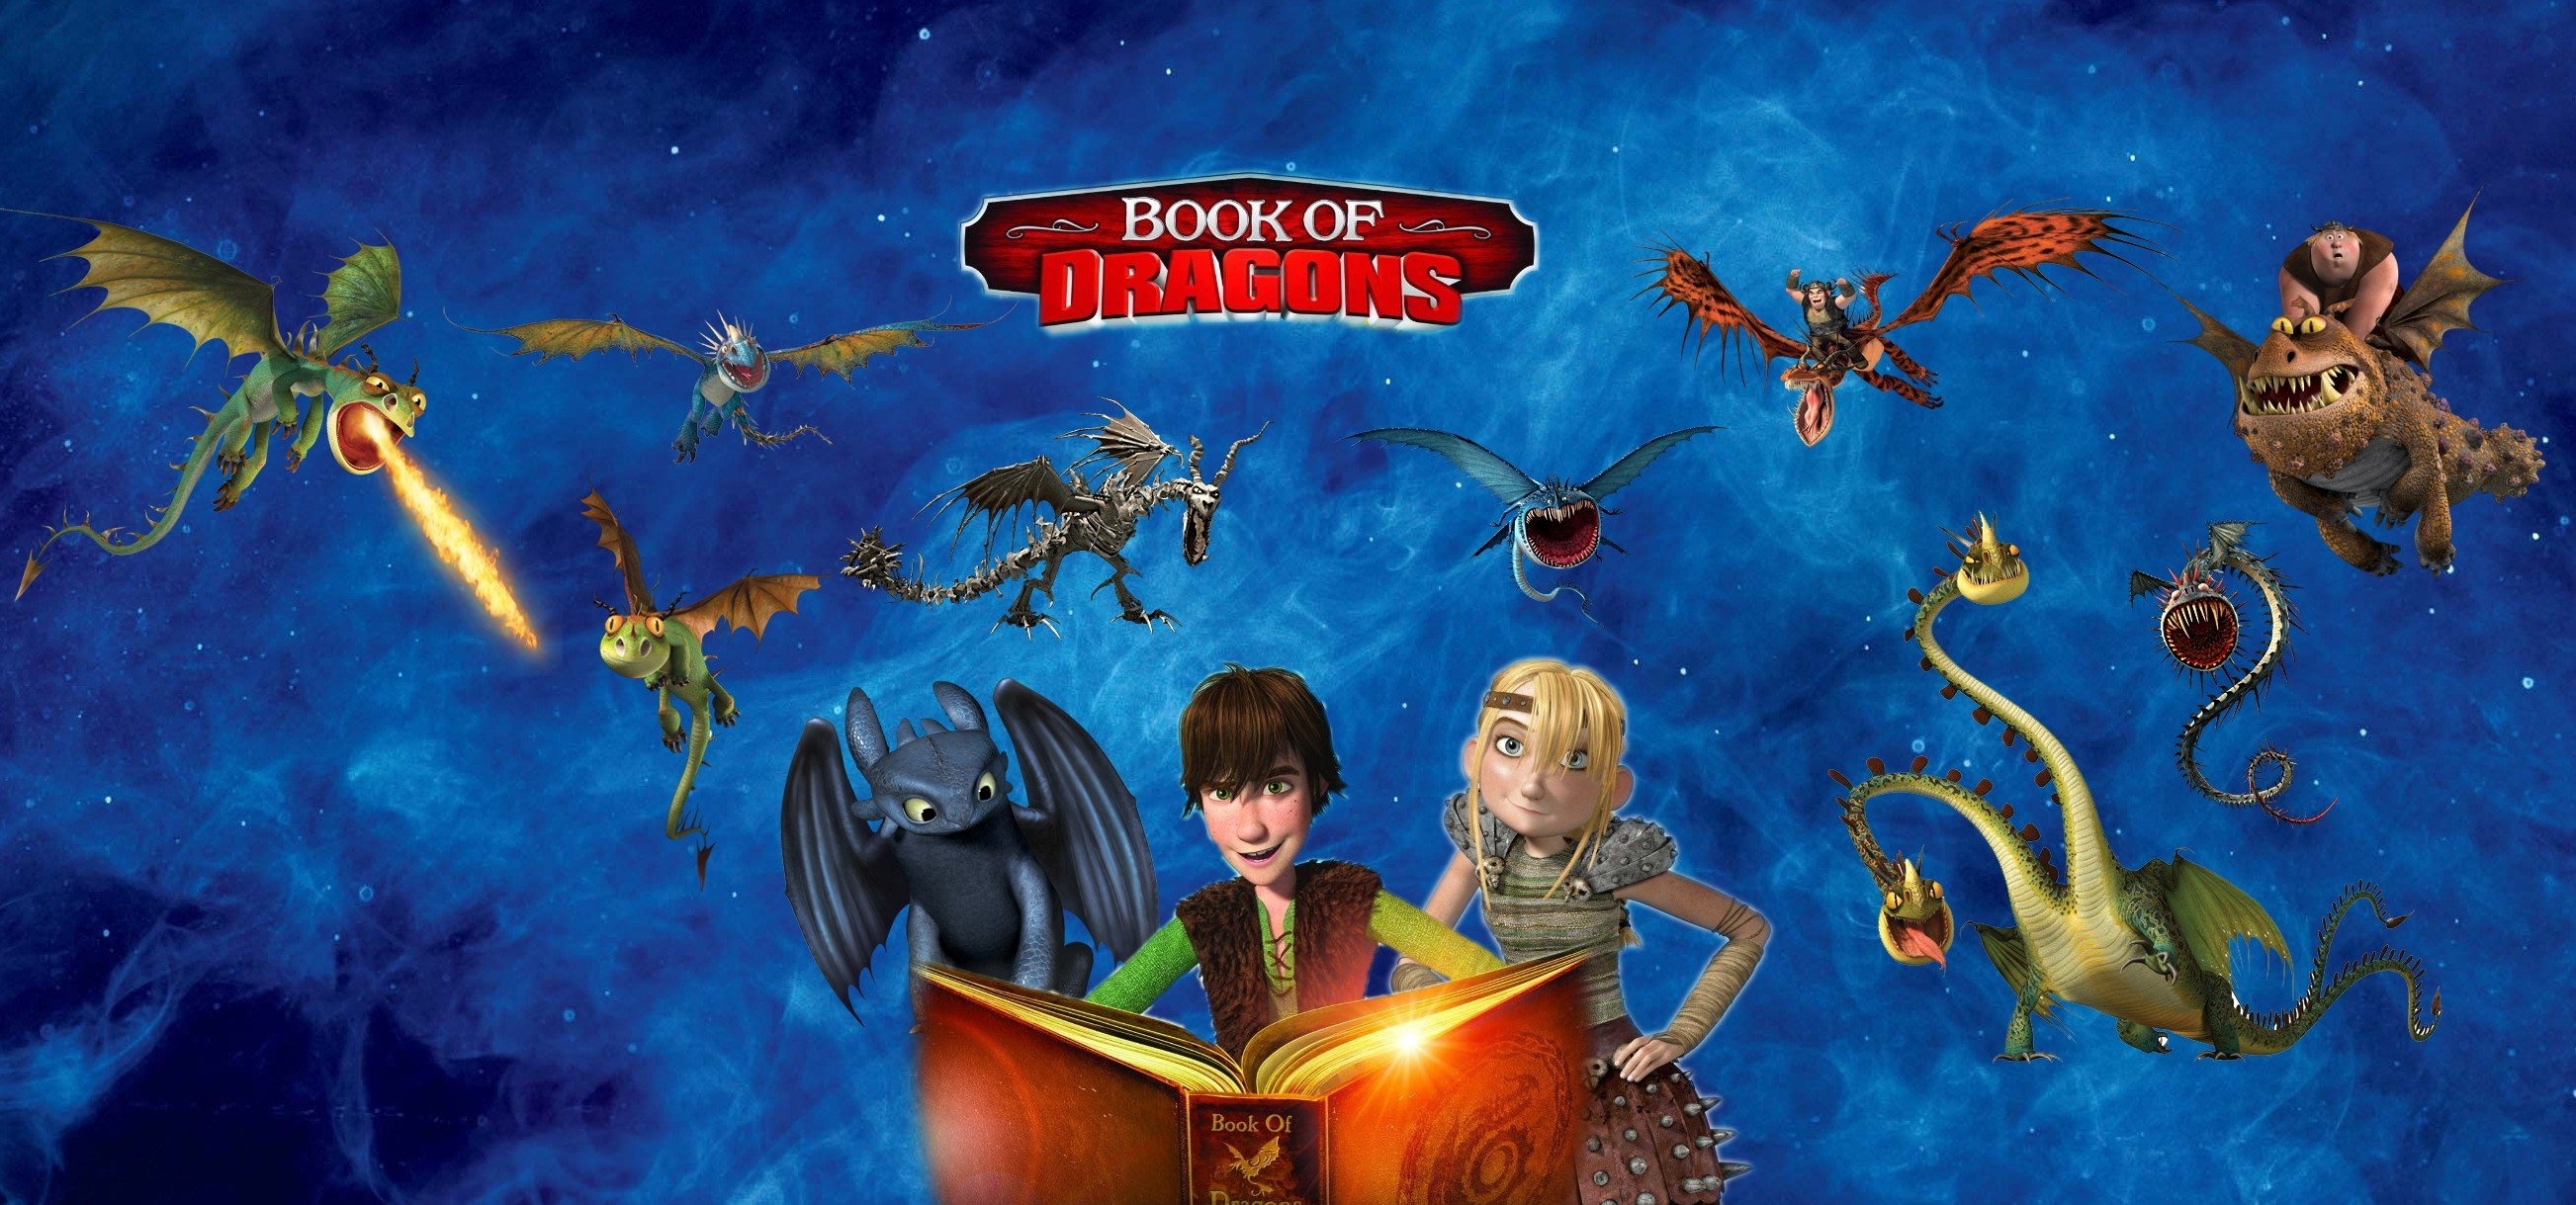 bookofdragons1.jpg